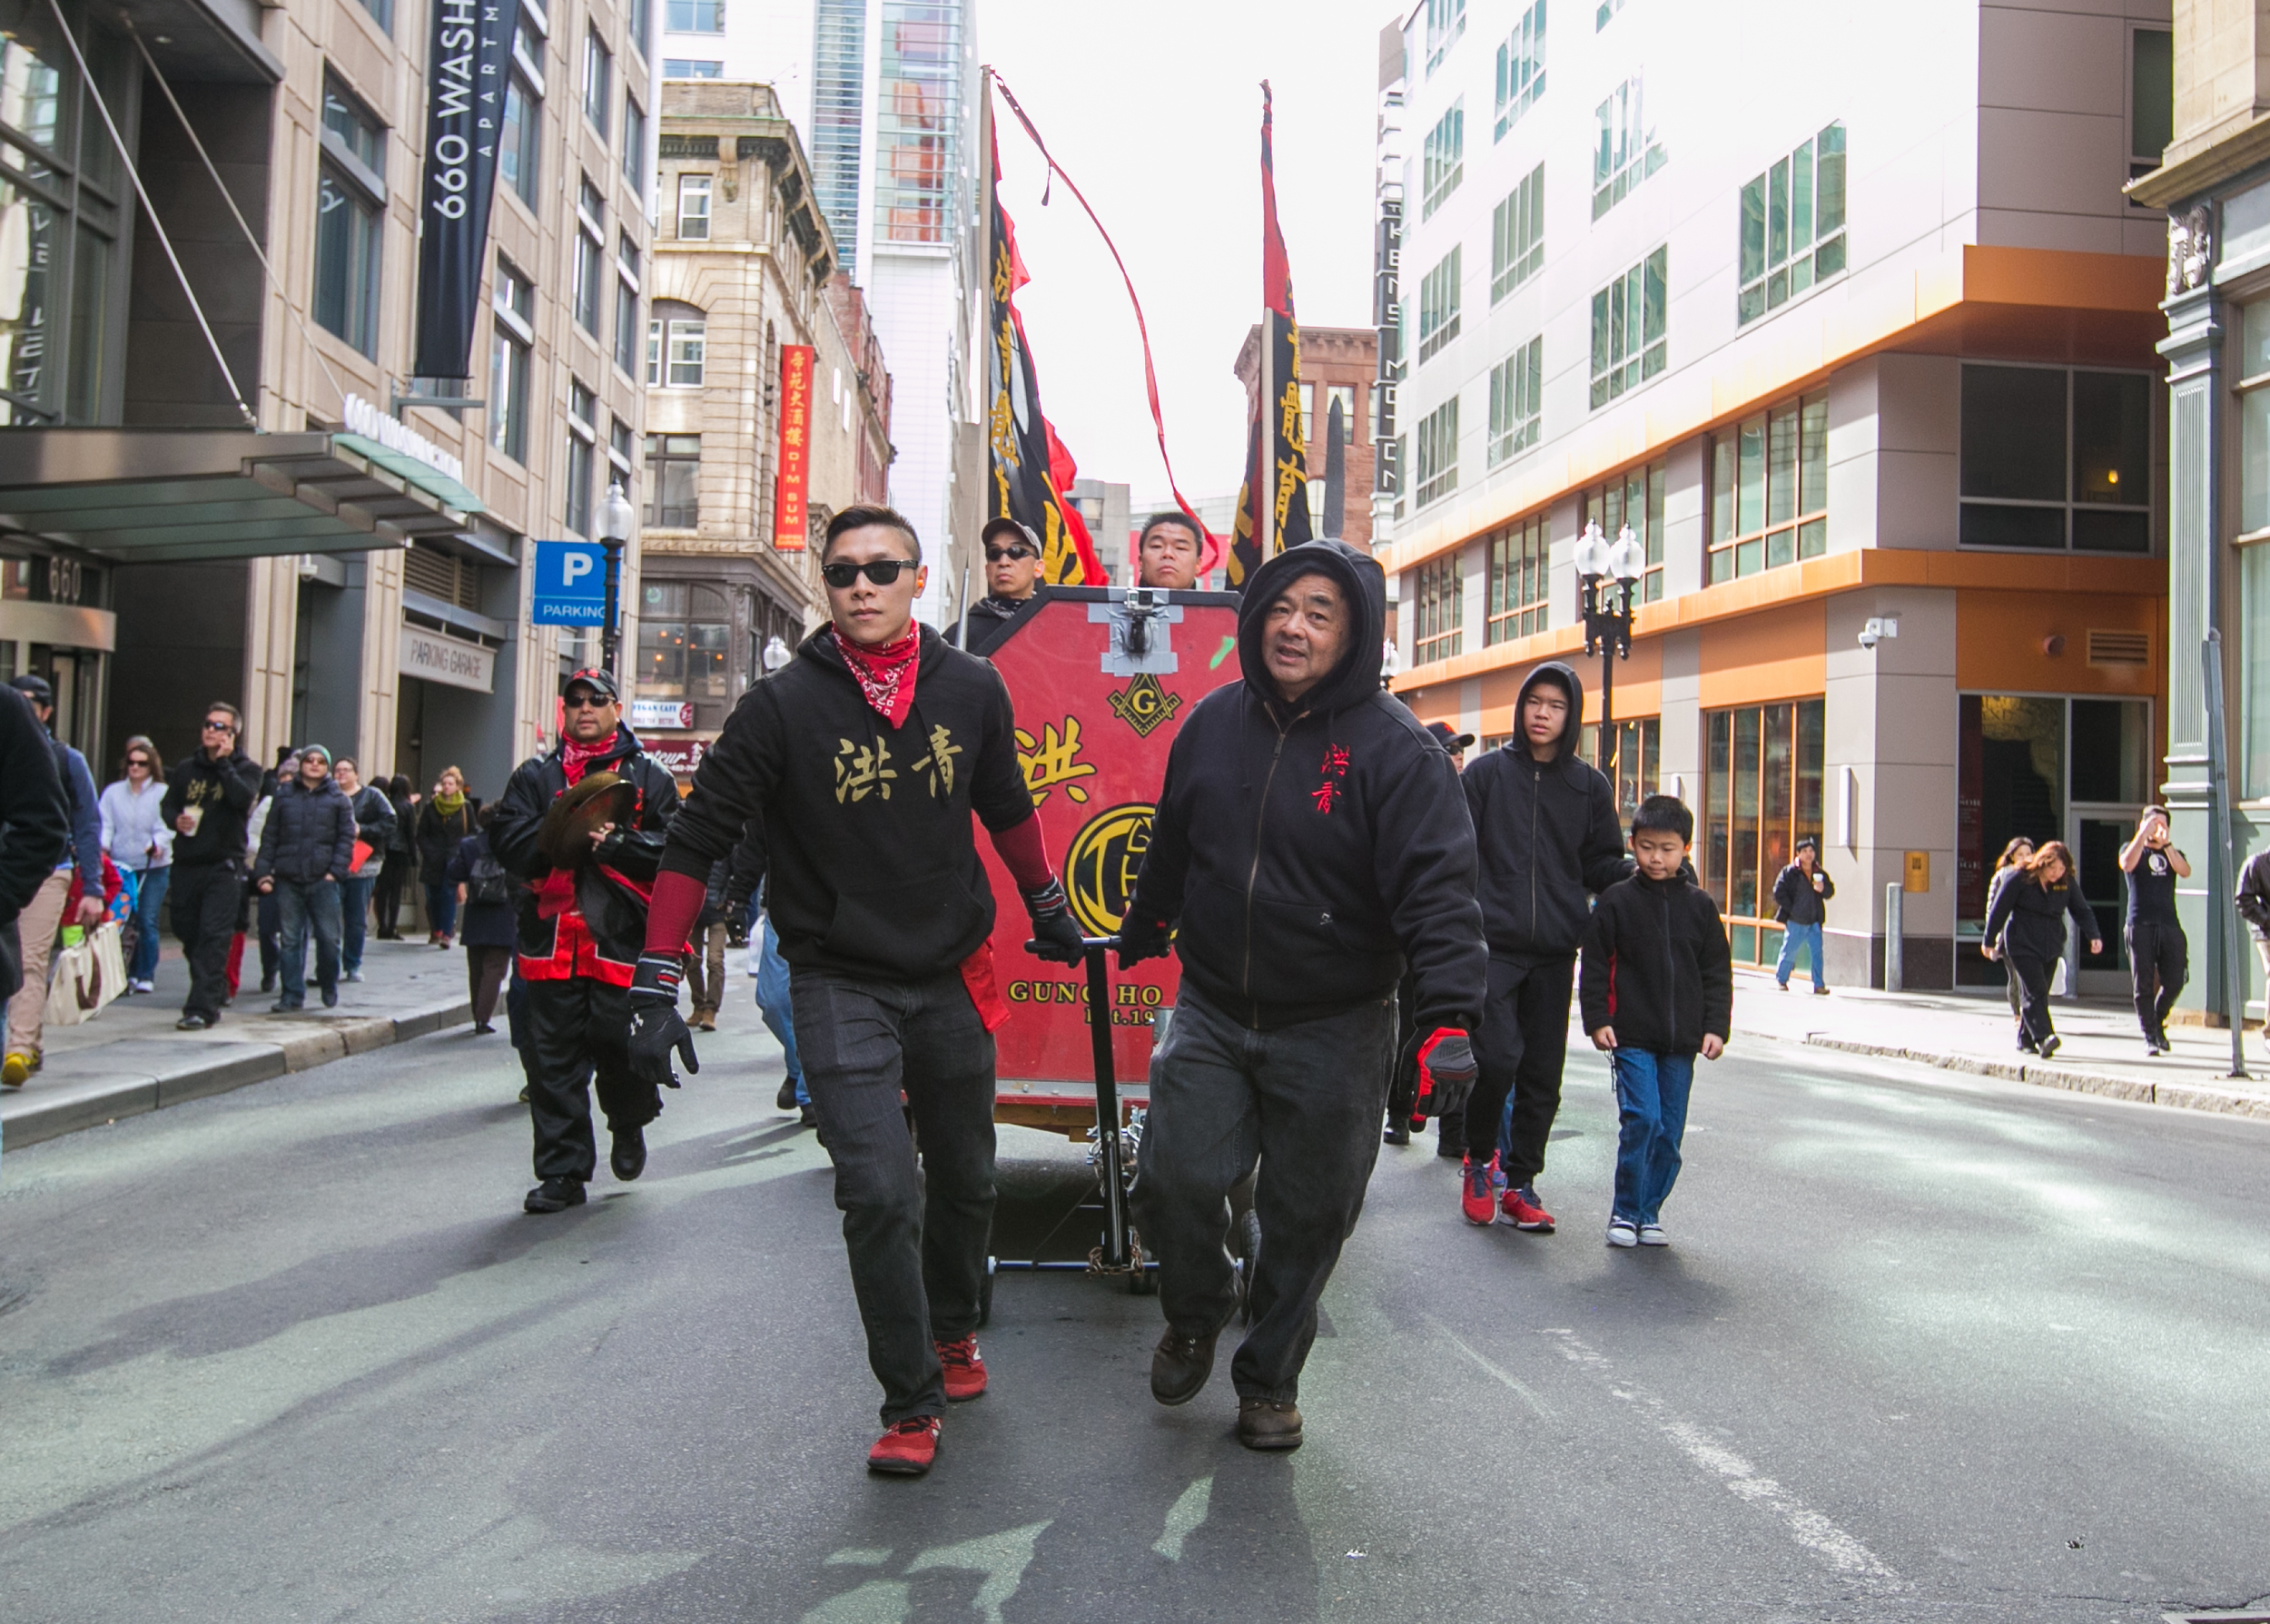 February 21, 2016: Wendell Chin (left) and Joe Chin (right) of the Gung Ho Club pull a carriage outfitted with musical accompaniment for the Lion Dance parade in Boston's Chinatown.The musicians are responsible for setting the pace of the performance,and include a drum, gong, and cymbal player. The Gung Ho Club, established in 1948 as part of the Chinese Freemasons, hosts the annual celebration in honor of the Chinese New Year.  ©  Mike Schwarz